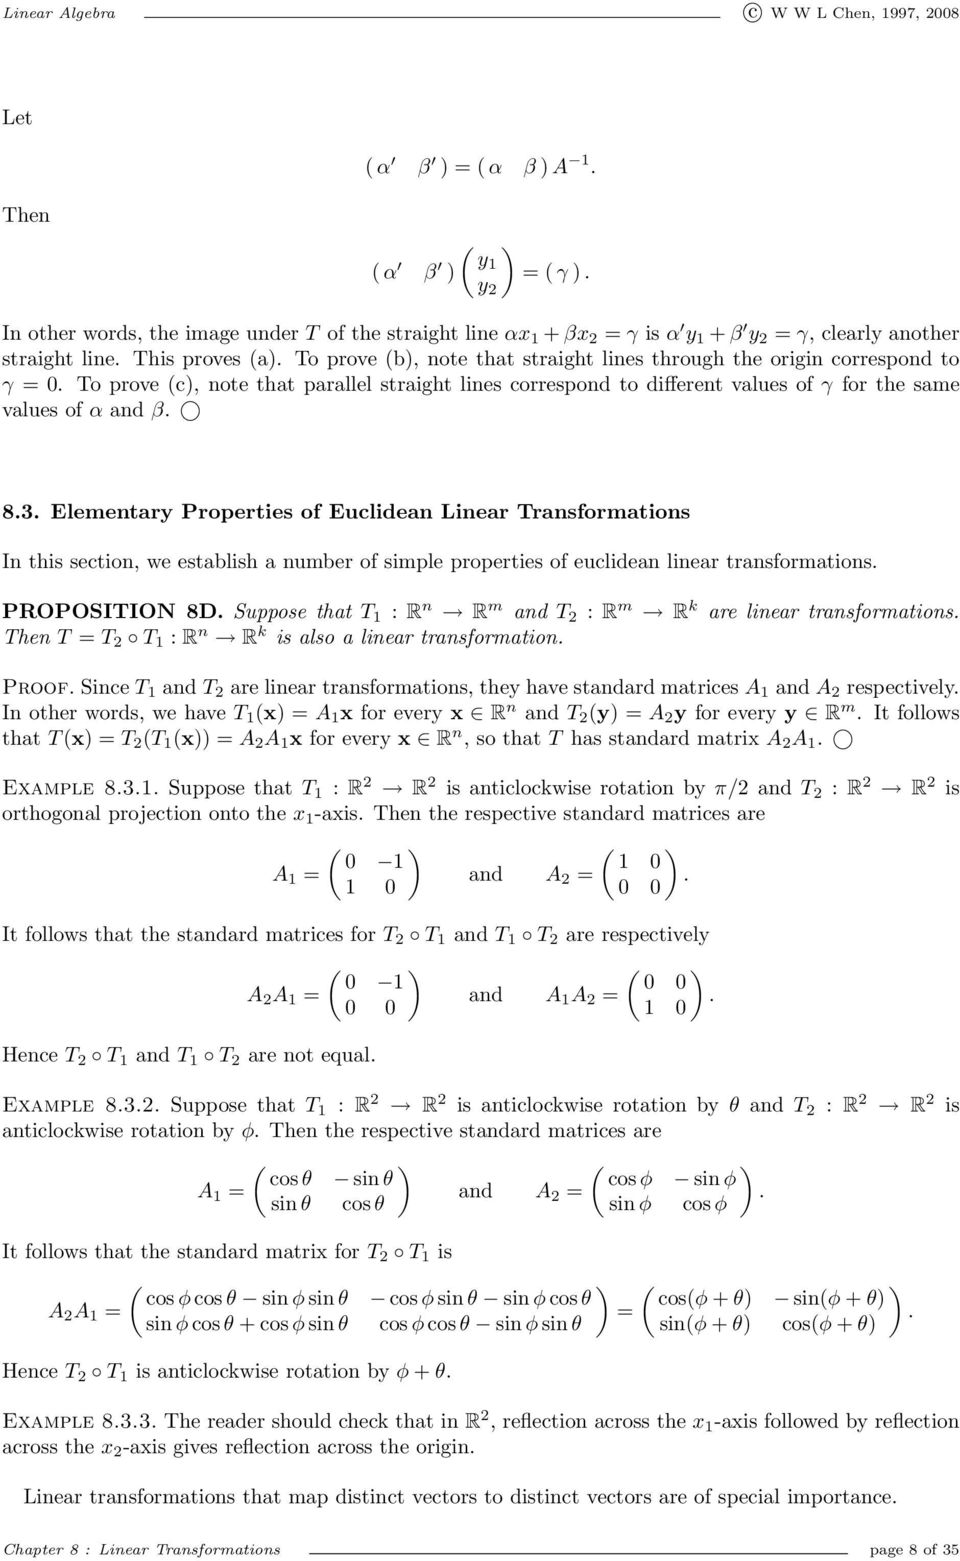 Euclidean Linear Transformations In this section, we establish a number of simple properties of euclidean linear transformations PROPOSITION 8D Suppose that T 1 : R n R m and T 2 : R m R k are linear